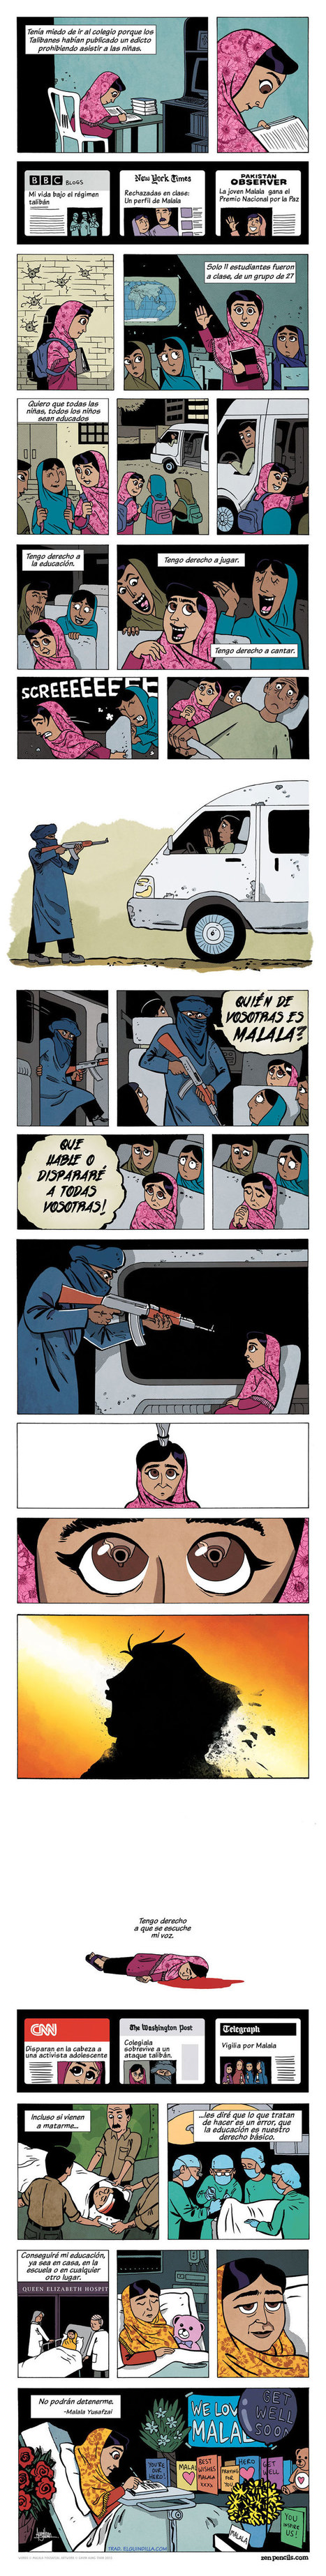 Cómic sobre Malala Yousafzai en castellano. | Spagnolo L2 | Scoop.it